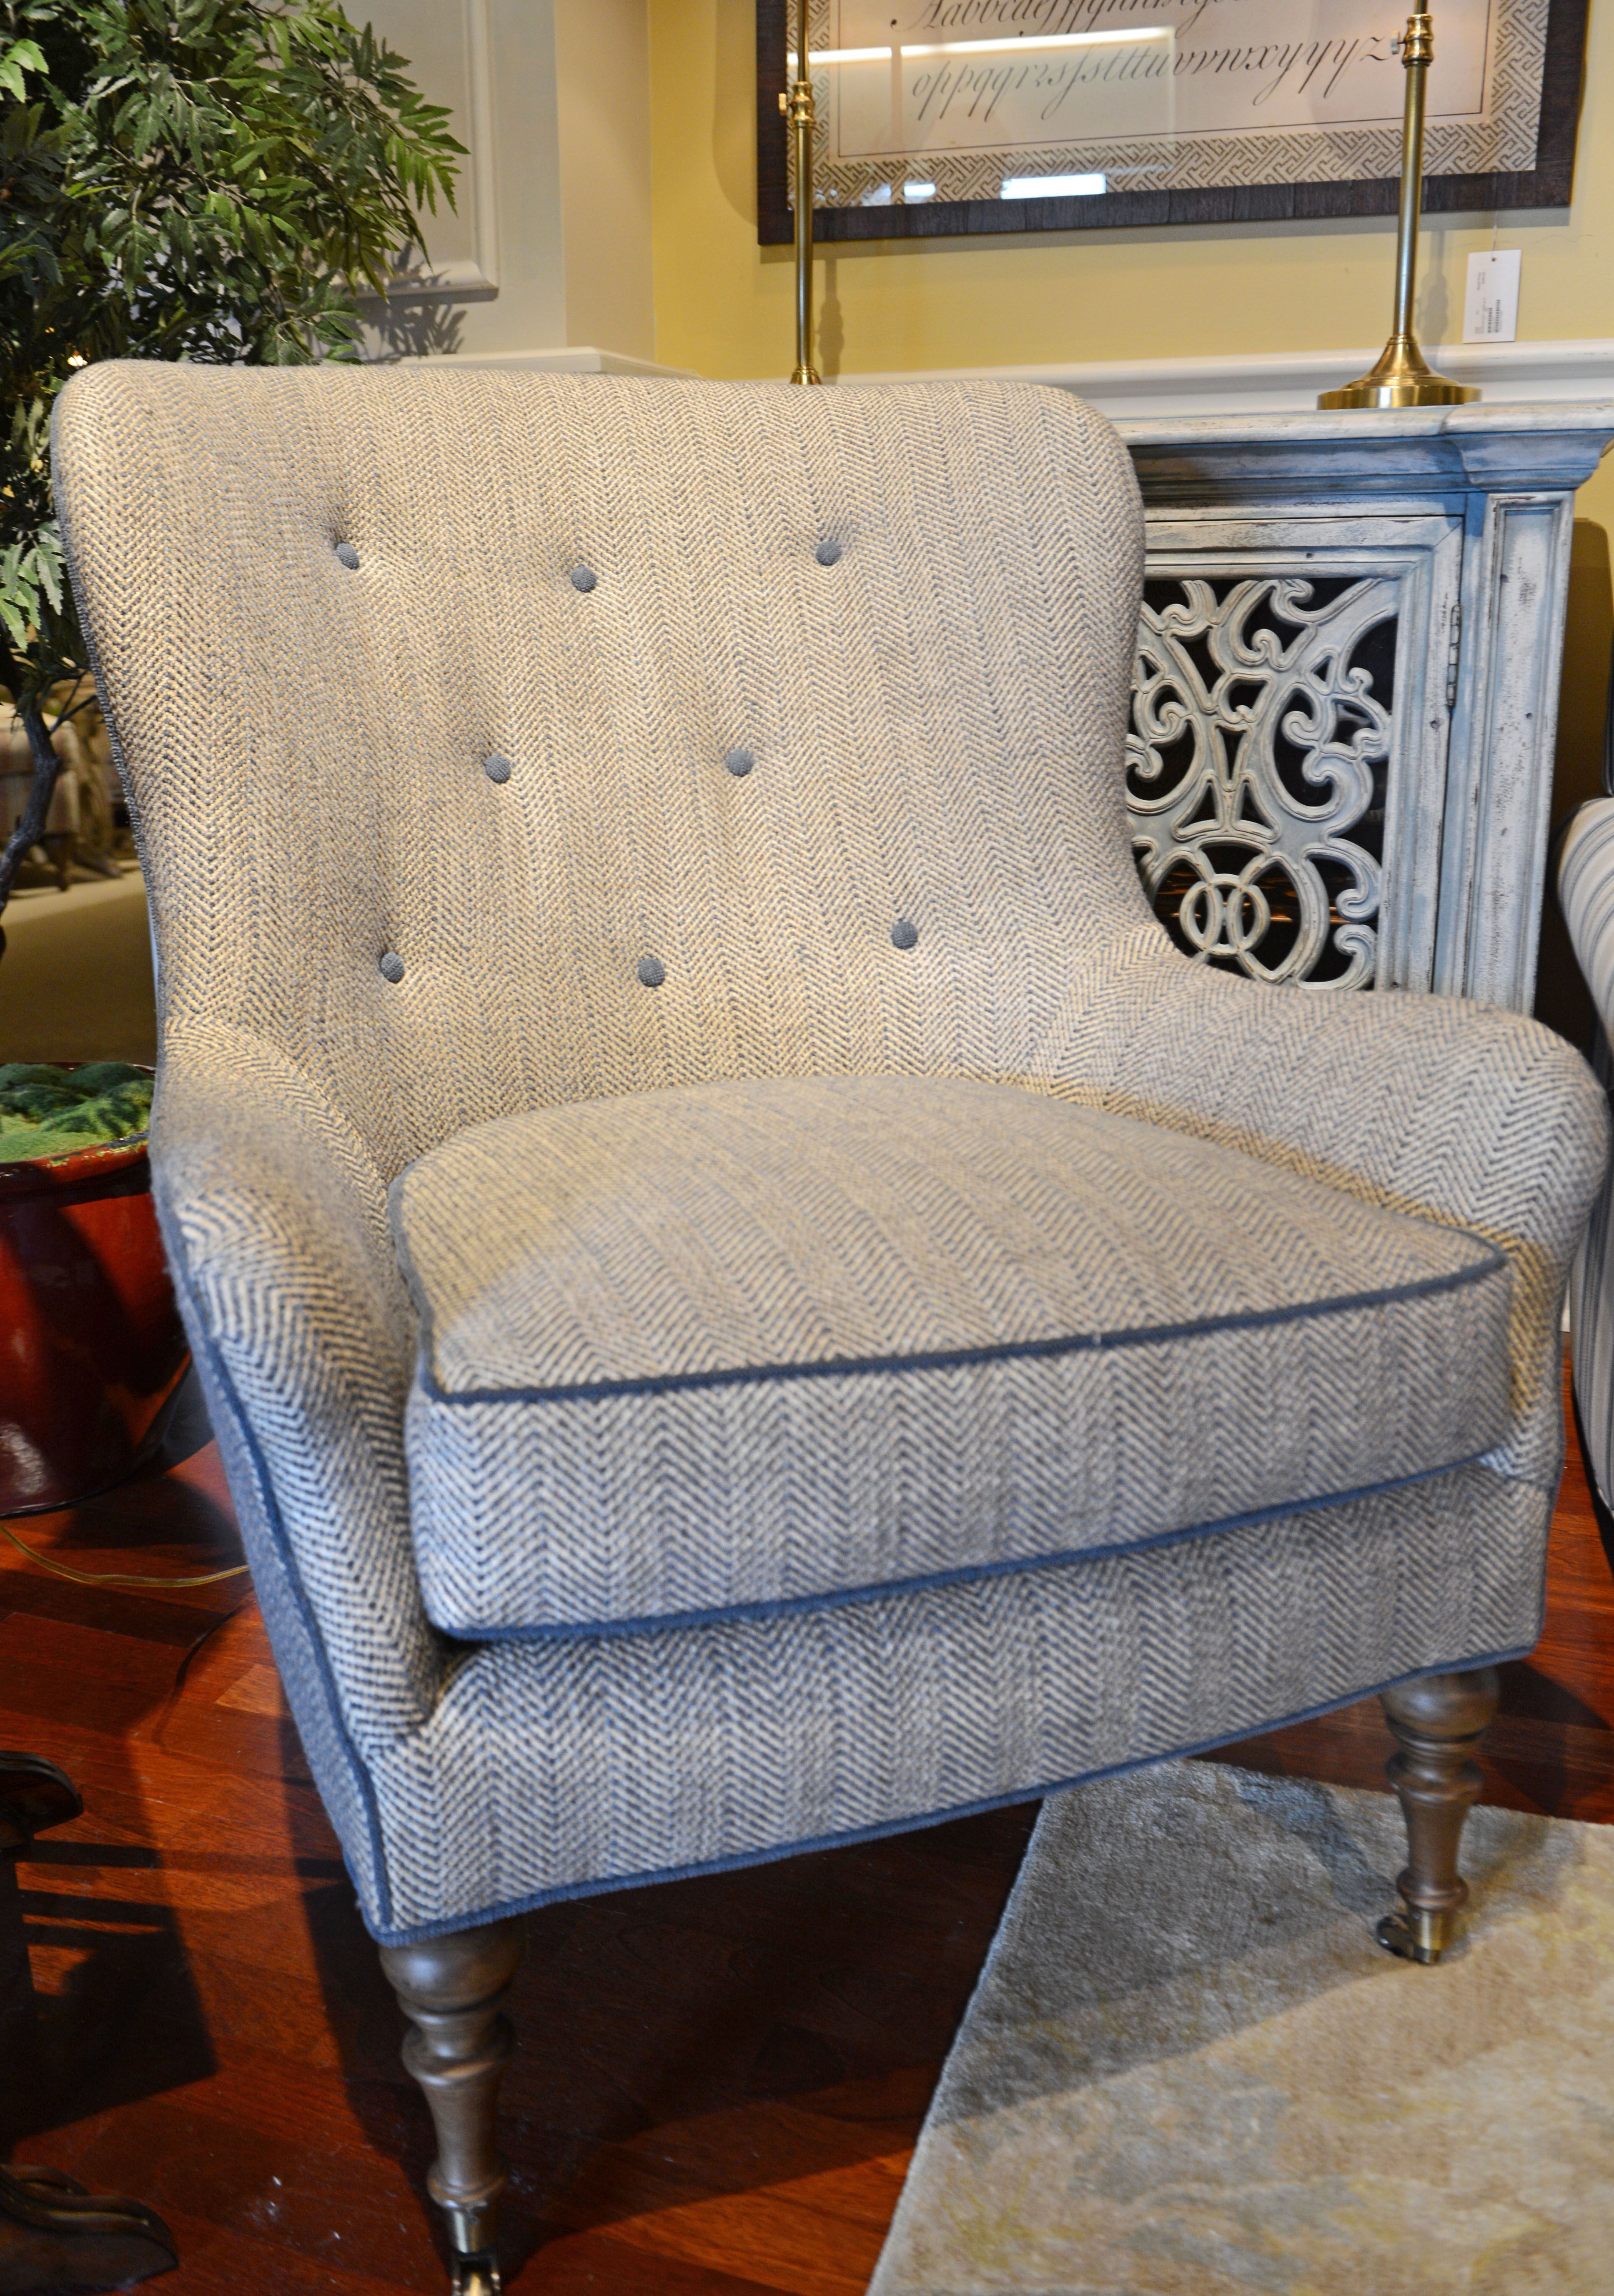 Menswear Patterns Like Herringbone And Houndstooth As Upholstery Chair Available At Inter Ors Lancaster Pa Photo By Jeff Ruppenthal